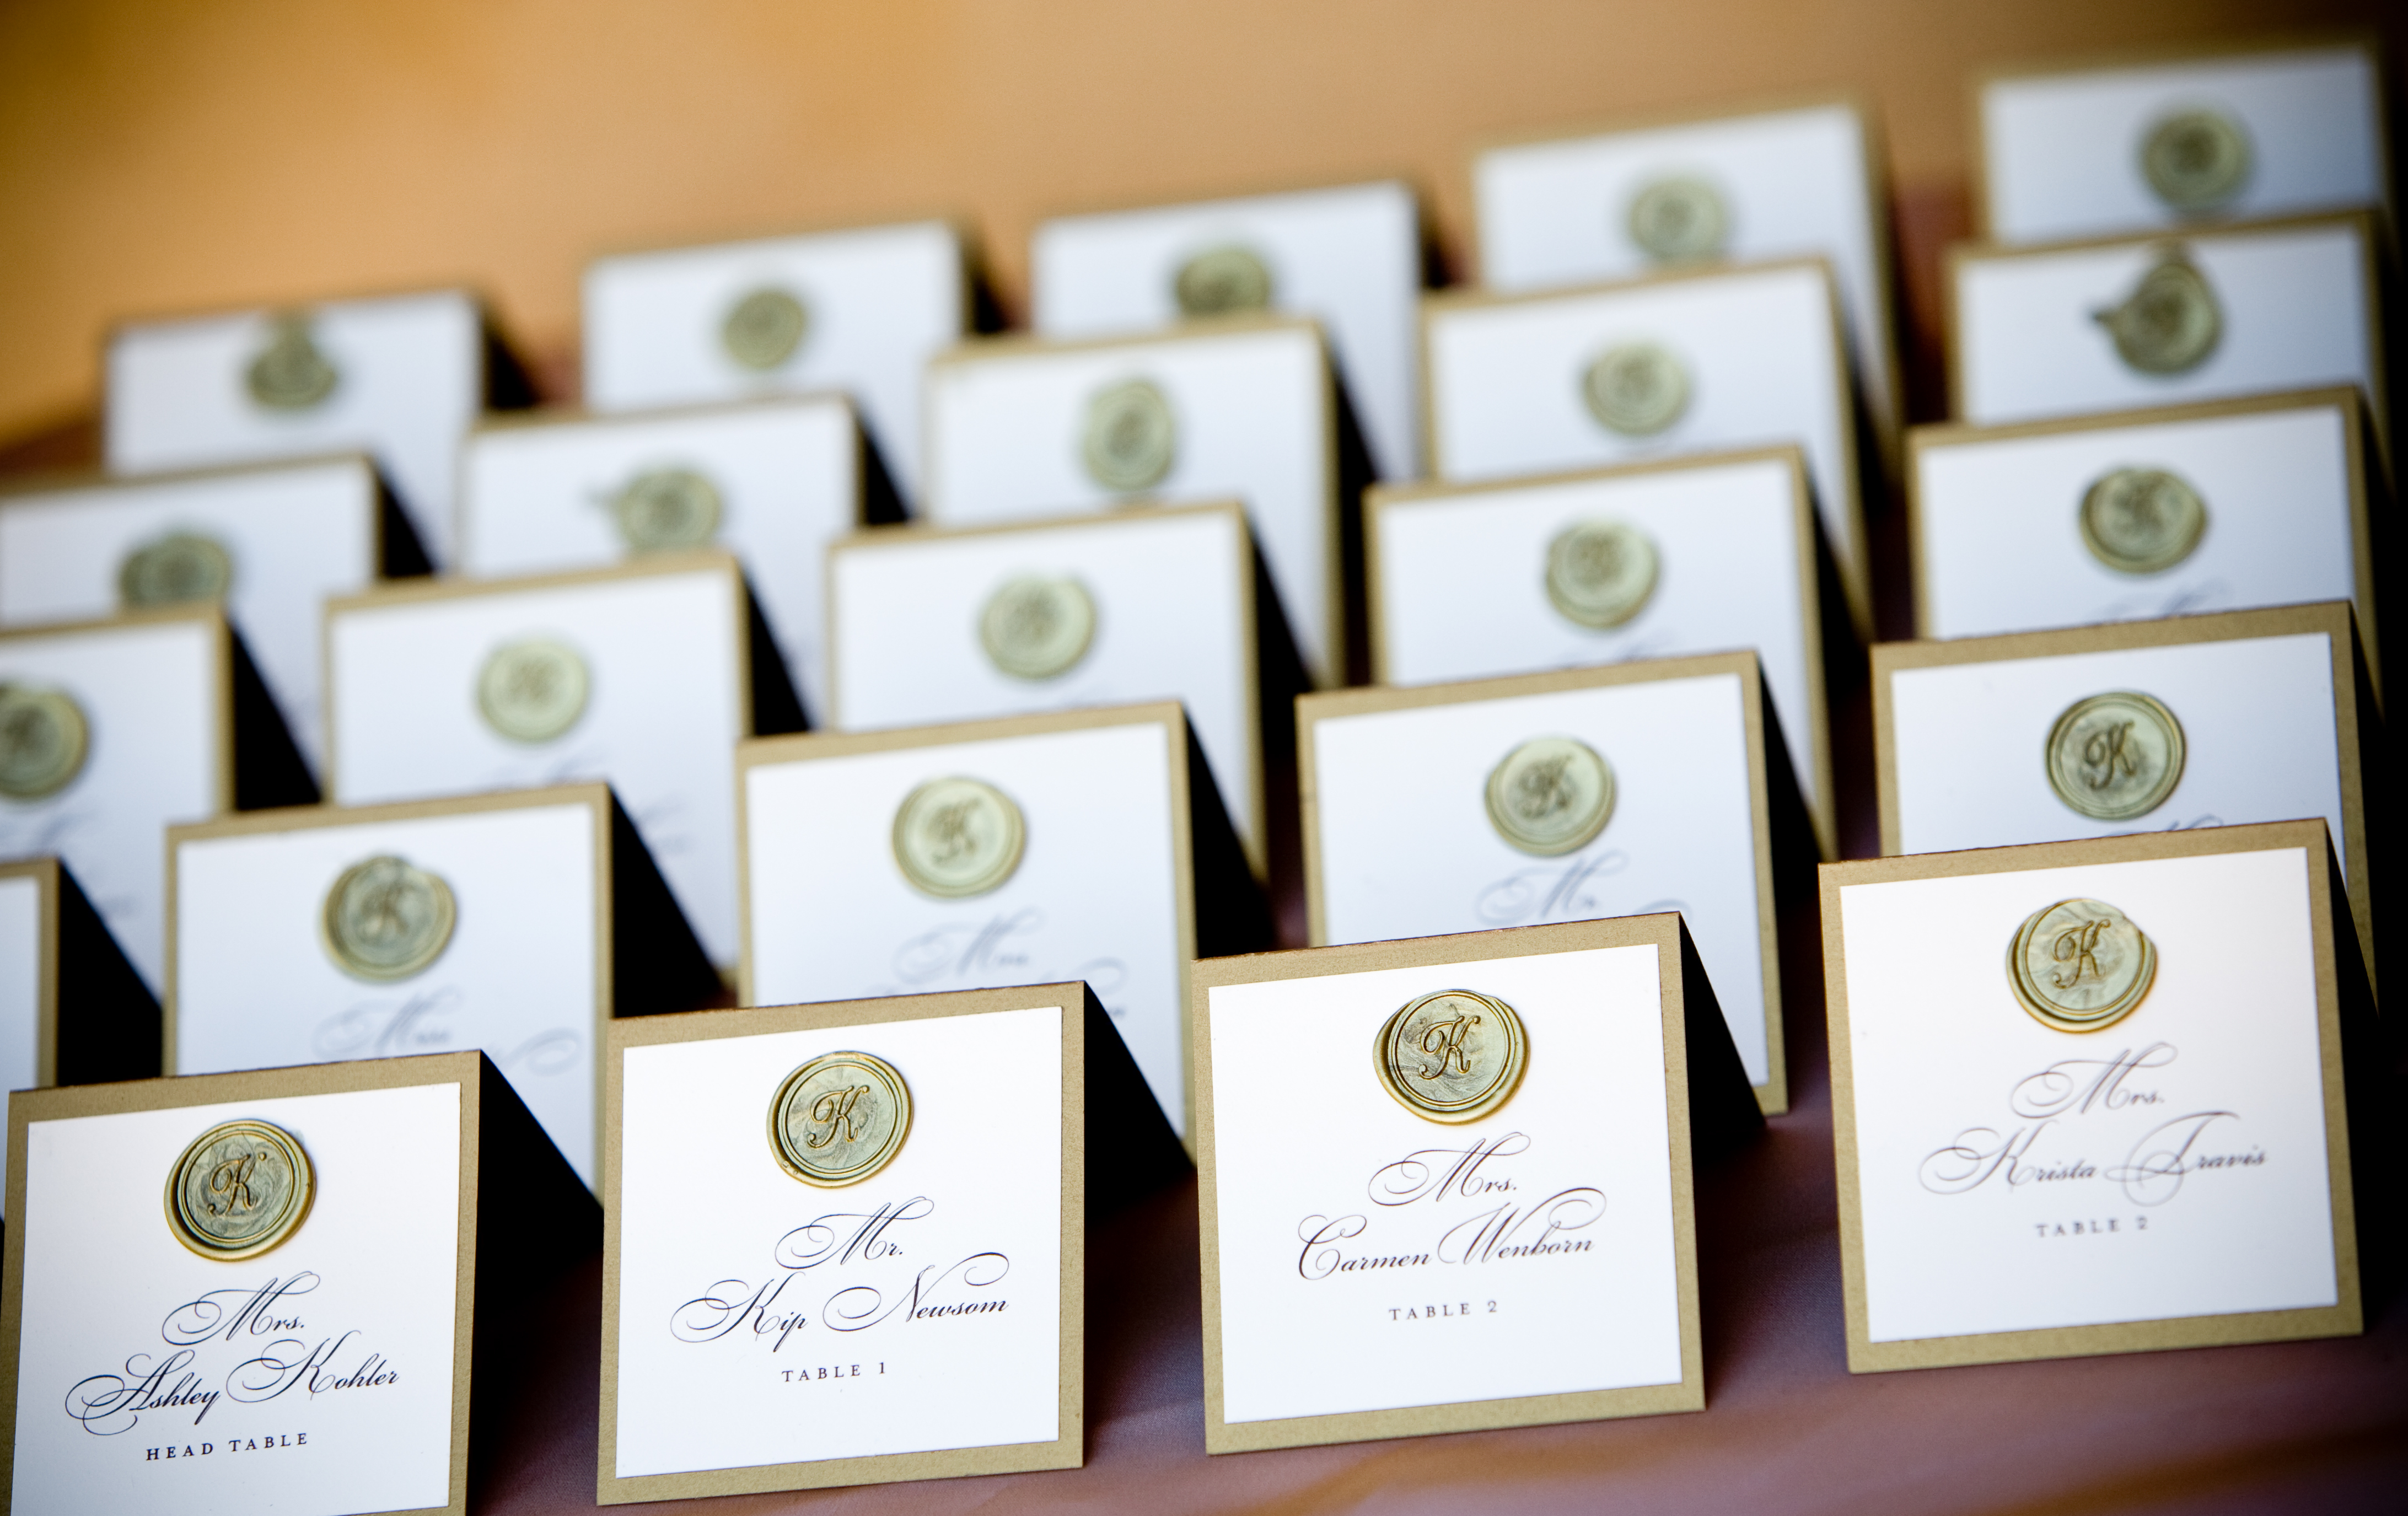 Stationery, white, brown, Escort Cards, Cards, Escort, Place, Ashley kohler events, April smith photography, Chateau felice